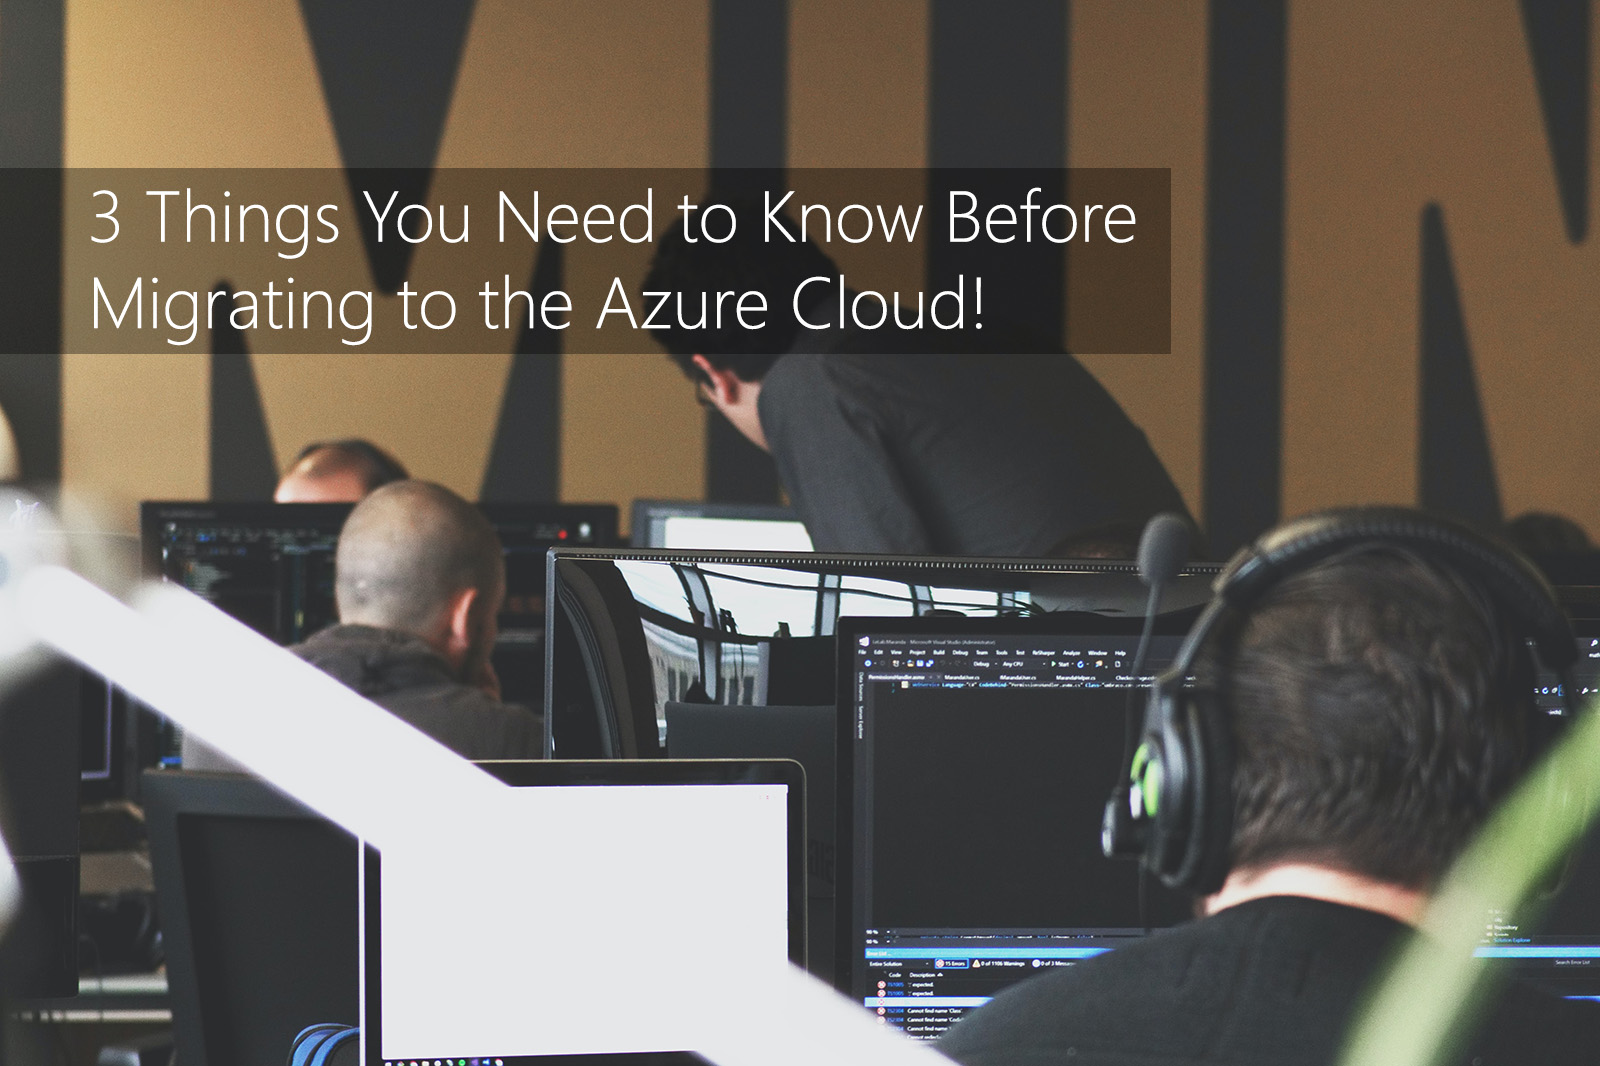 TMC-blog-3-things-you-need-to-know-before-migrating-to-azure-cloud